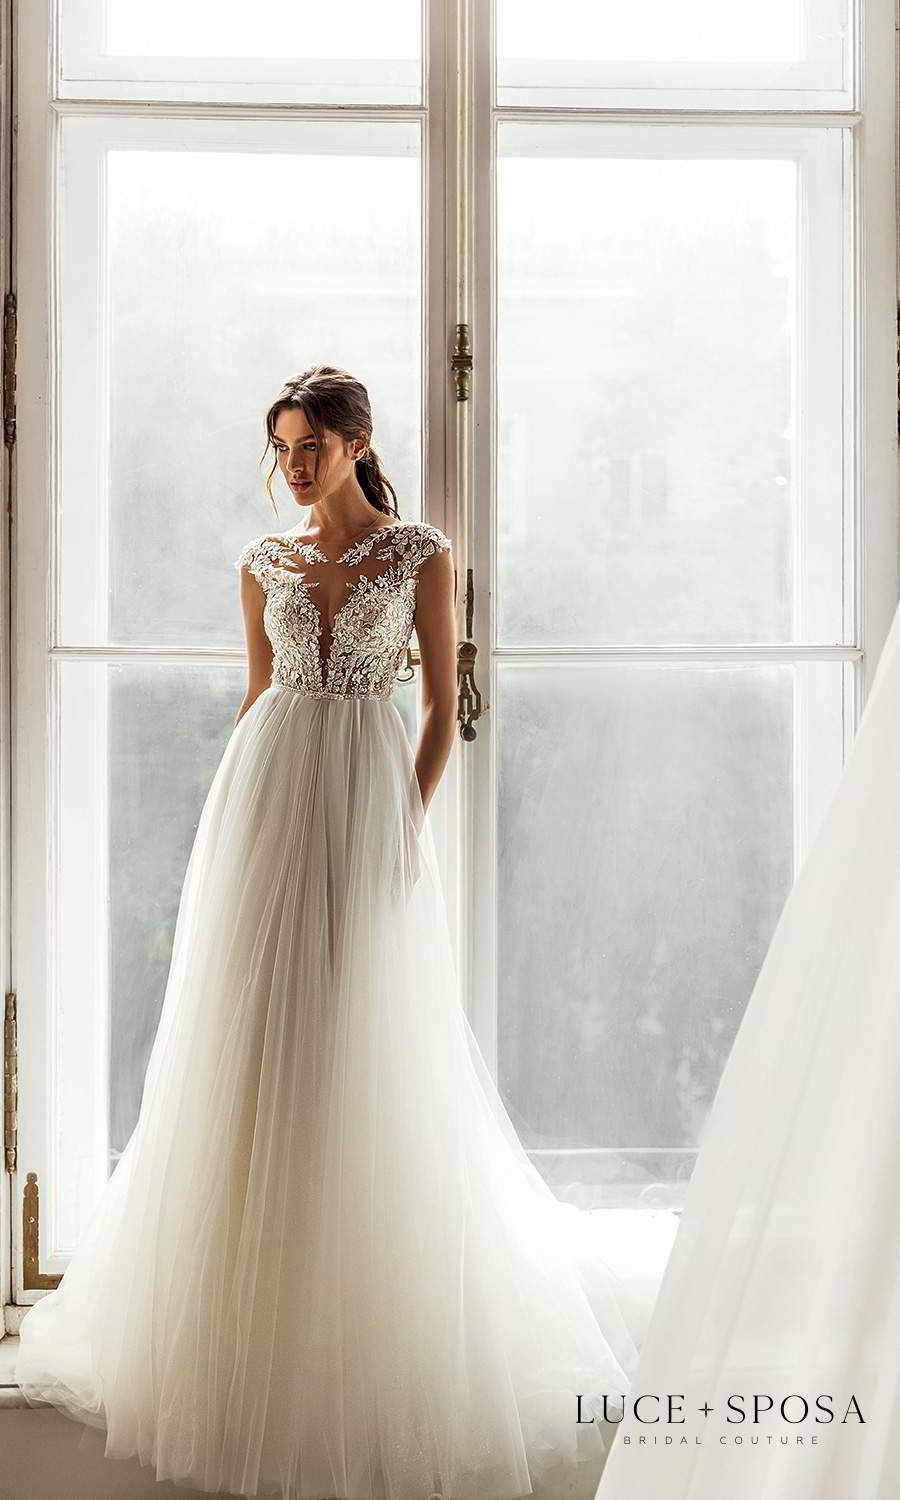 Luce Sposa 2021 Shades Of Couture Wedding Dresses Wedding Inspirasi In 2021 Wedding Dresses Wedding Dress Couture Ball Gown Wedding Dress [ 1500 x 900 Pixel ]